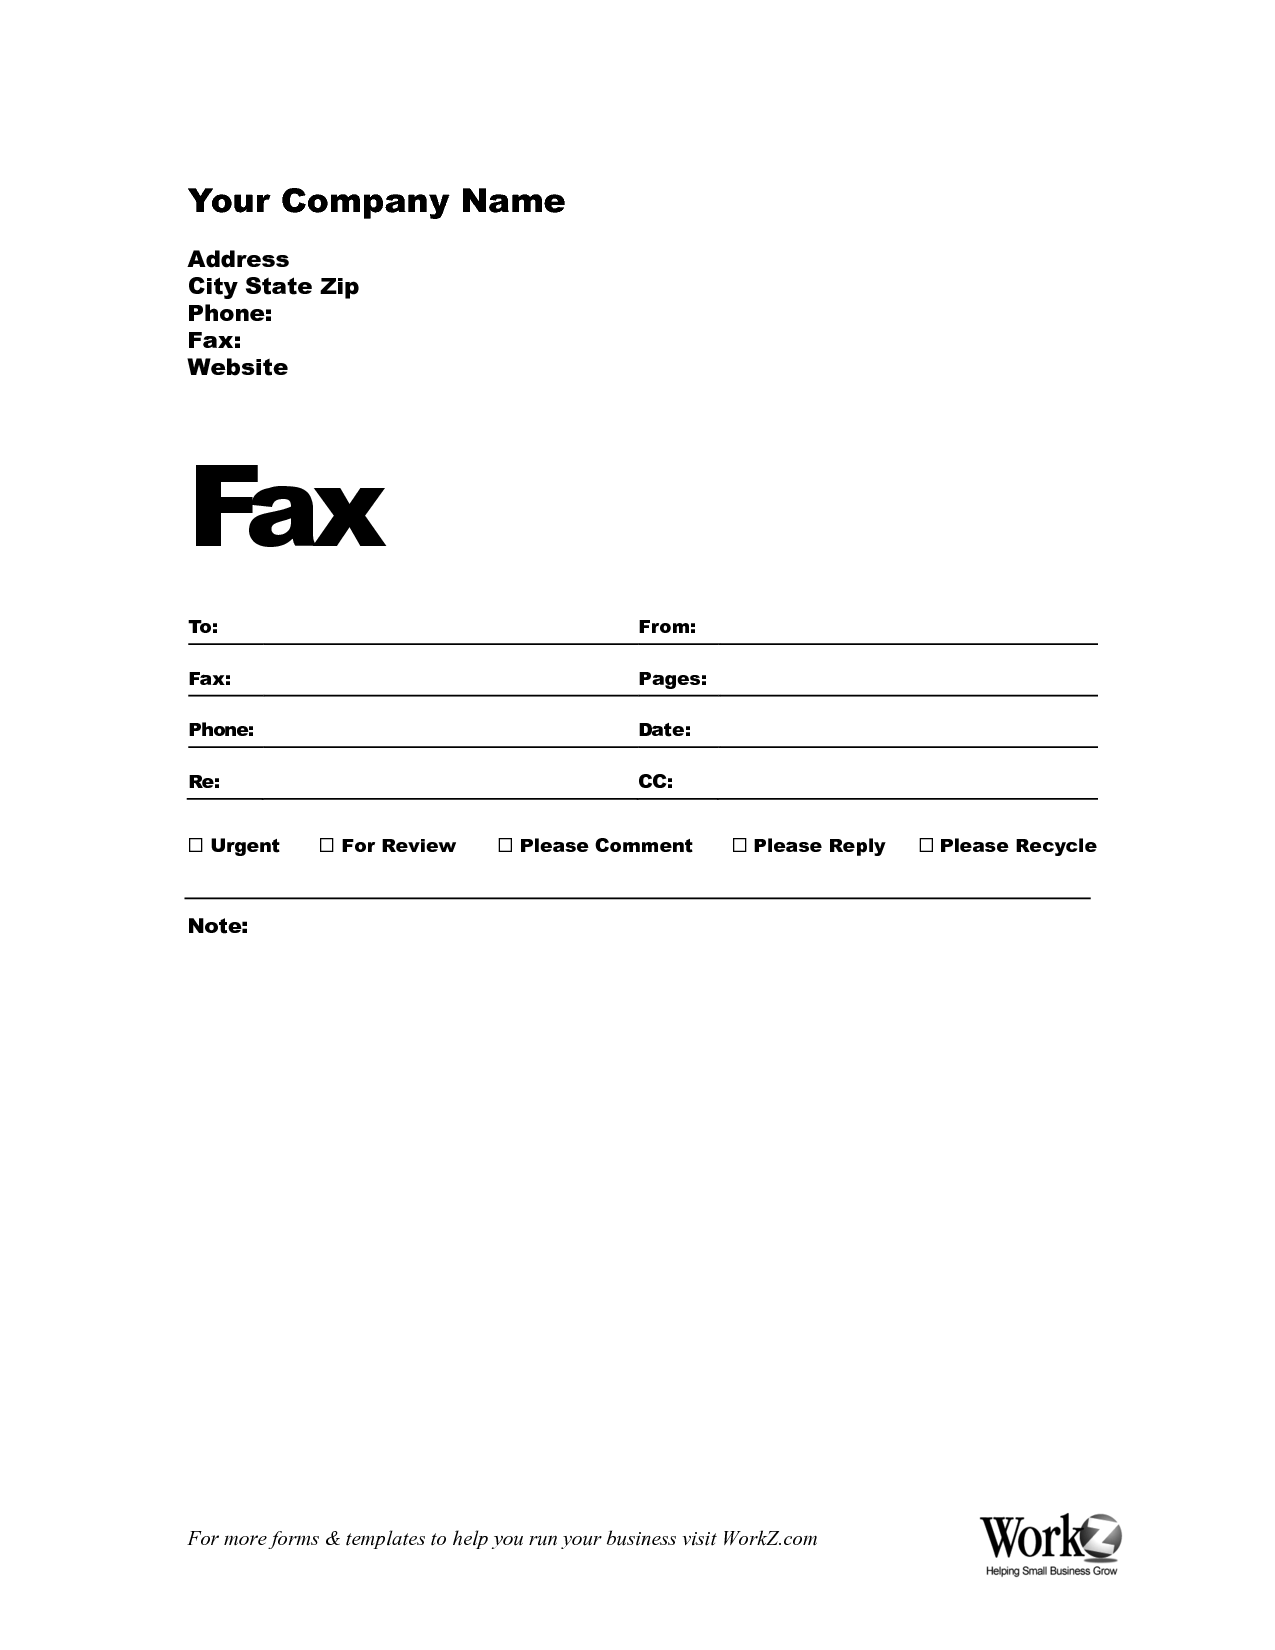 example of fax cover sheet for job application